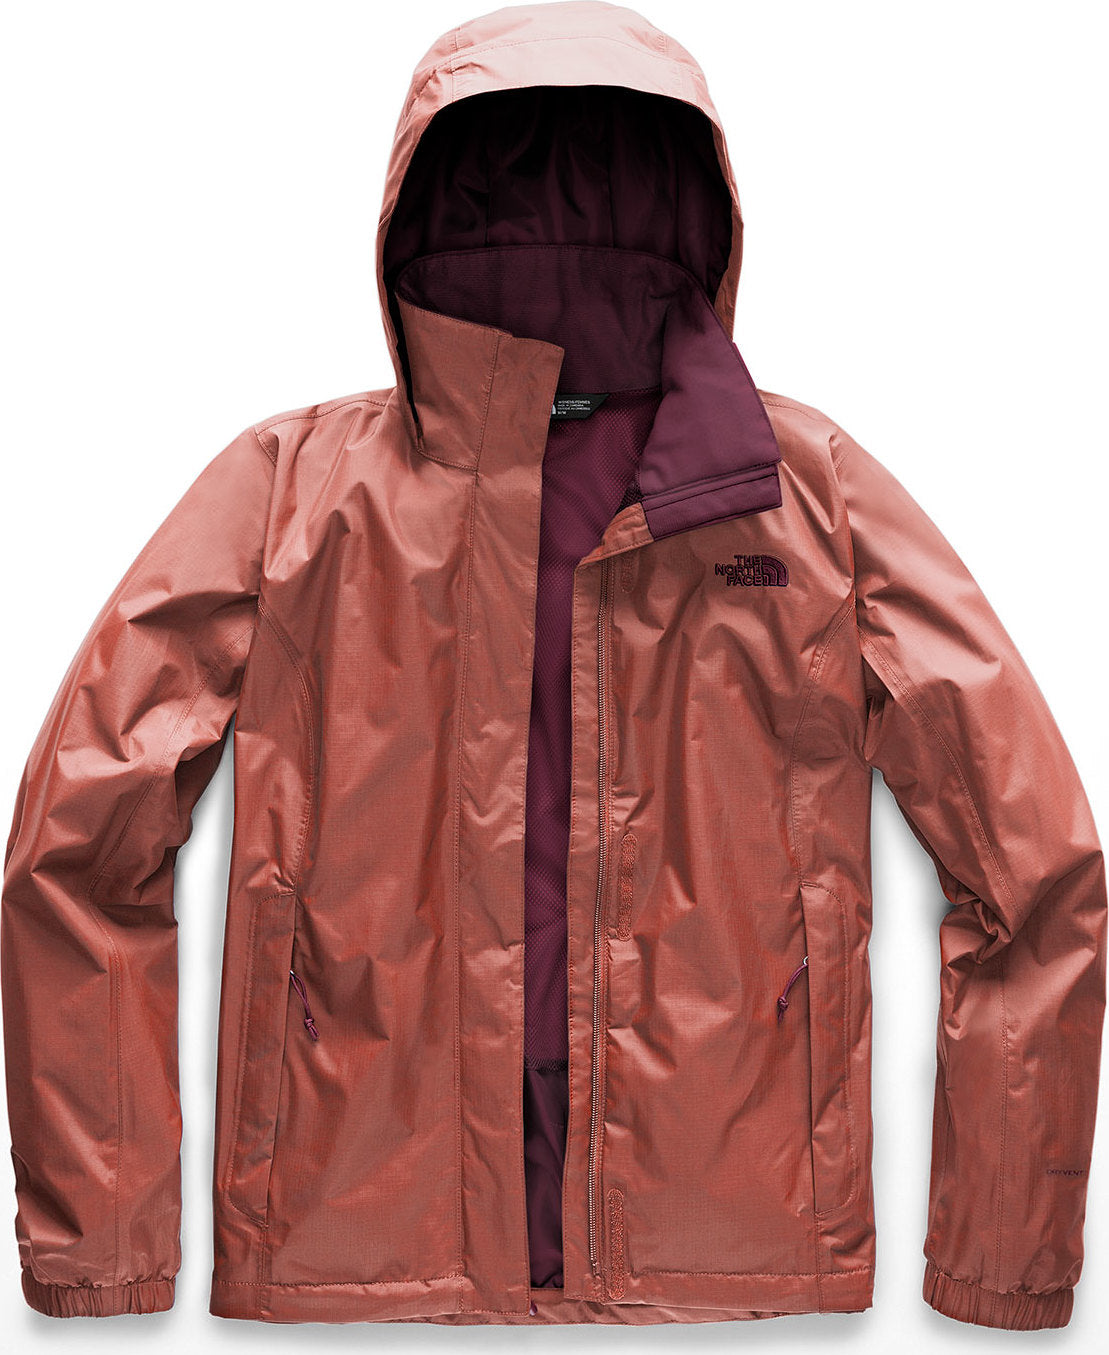 e2d43d7700 The North Face Resolve 2 Jacket - Women's | The Last Hunt